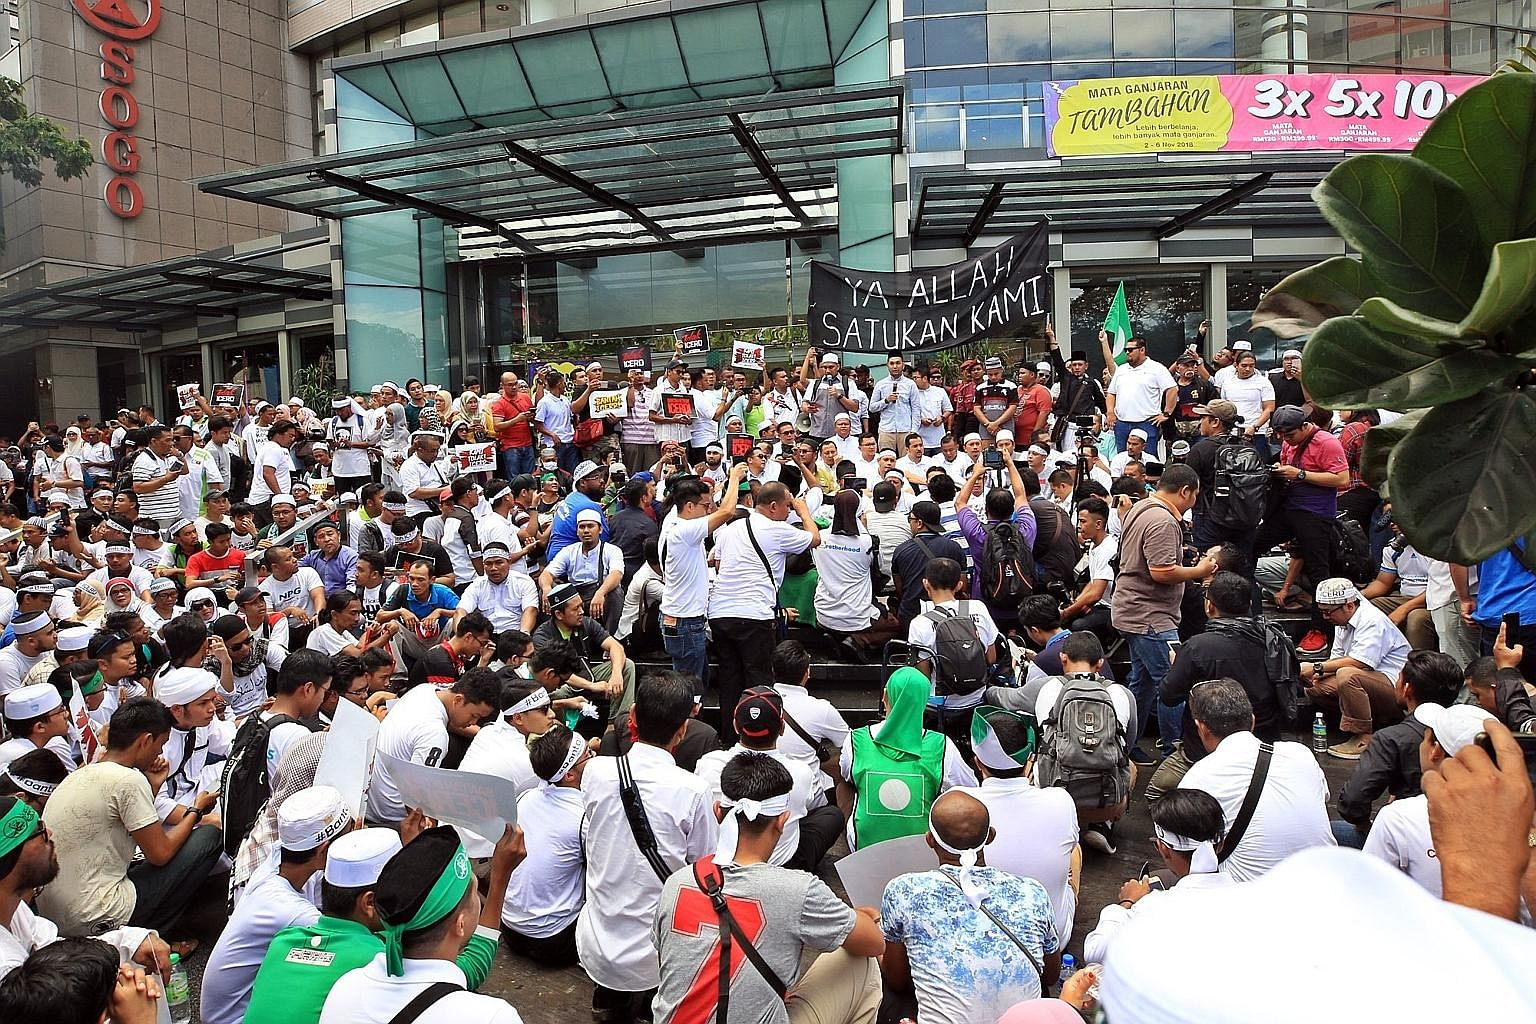 Protesters at a demonstration against the United Nations International Convention on the Elimination of All Forms of Racial Discrimination, organised by Umno Youth and Parti Islam SeMalaysia in Kuala Lumpur on Nov 4. The demonstrators claim that rati